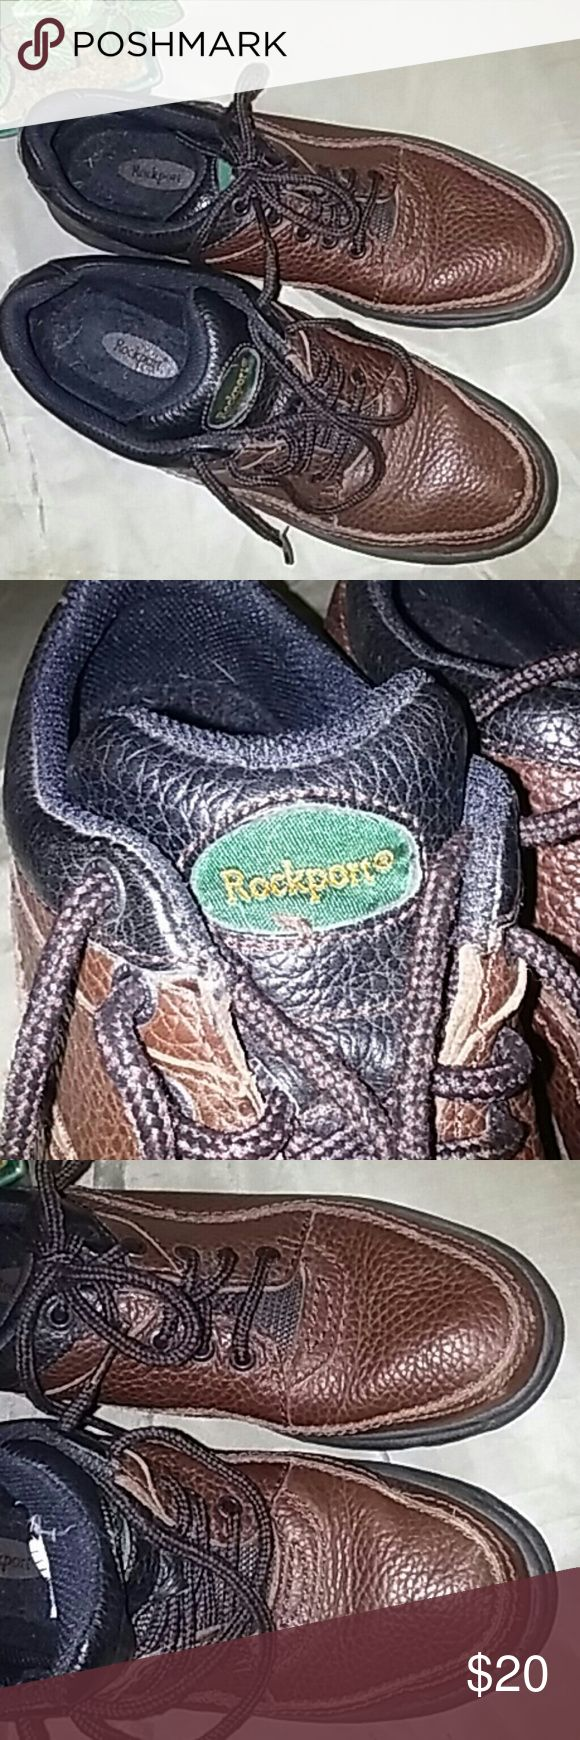 Rockport shoes Upper is leather and balance is man made. The shoes have seen some love but have plenty of life left in them.... these last forever! These shoes are thick sturdy and comfortable. Rockport Shoes Sneakers